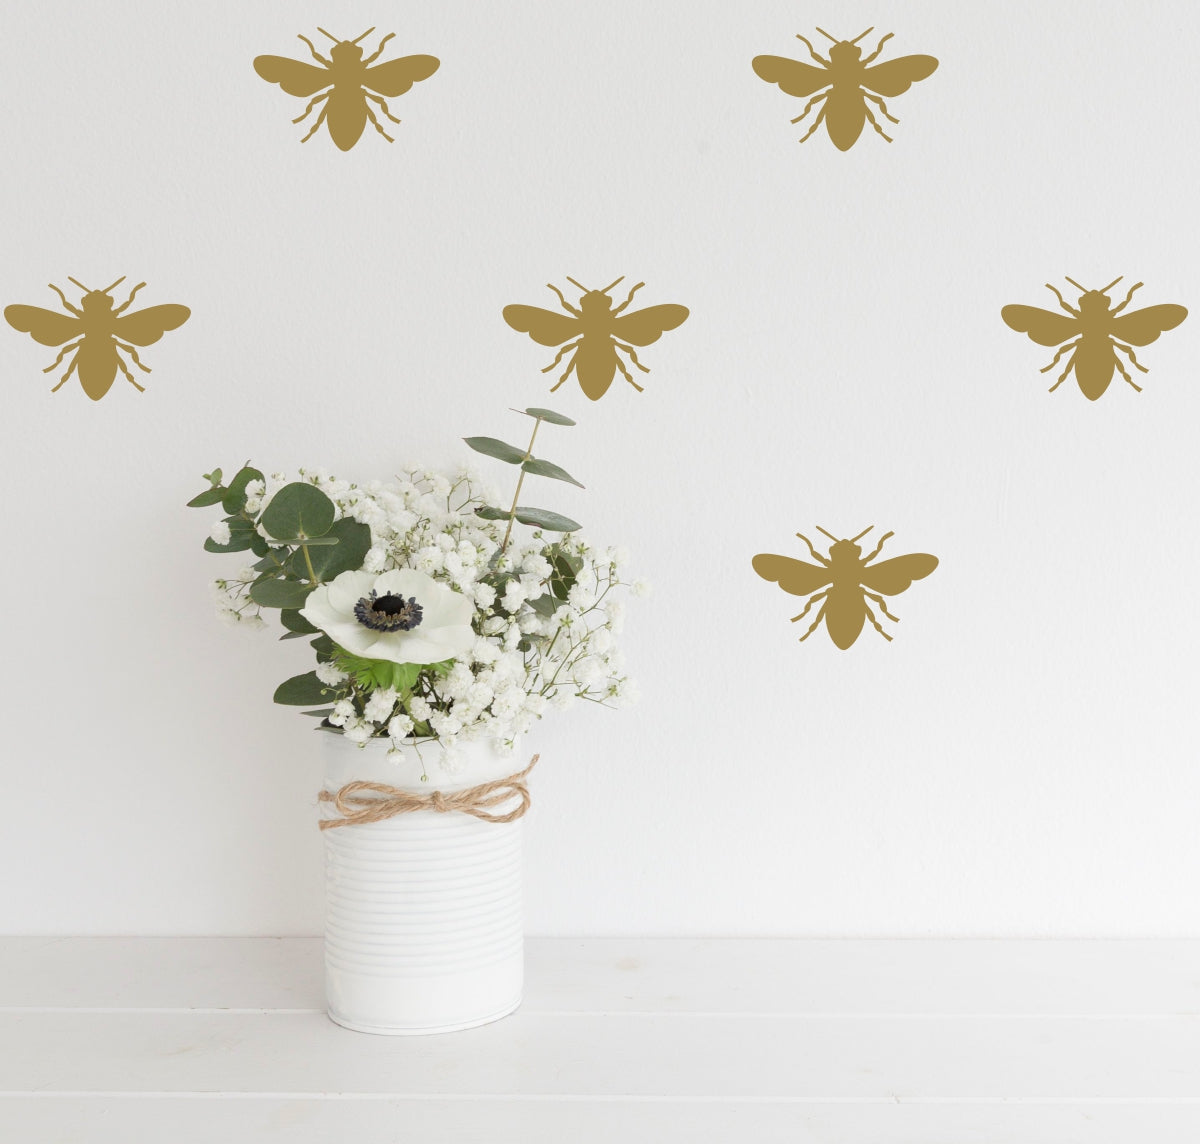 Bee Decor for Home | Gold Bee Decal | Bee Wall Decal Set | Bee Stickers